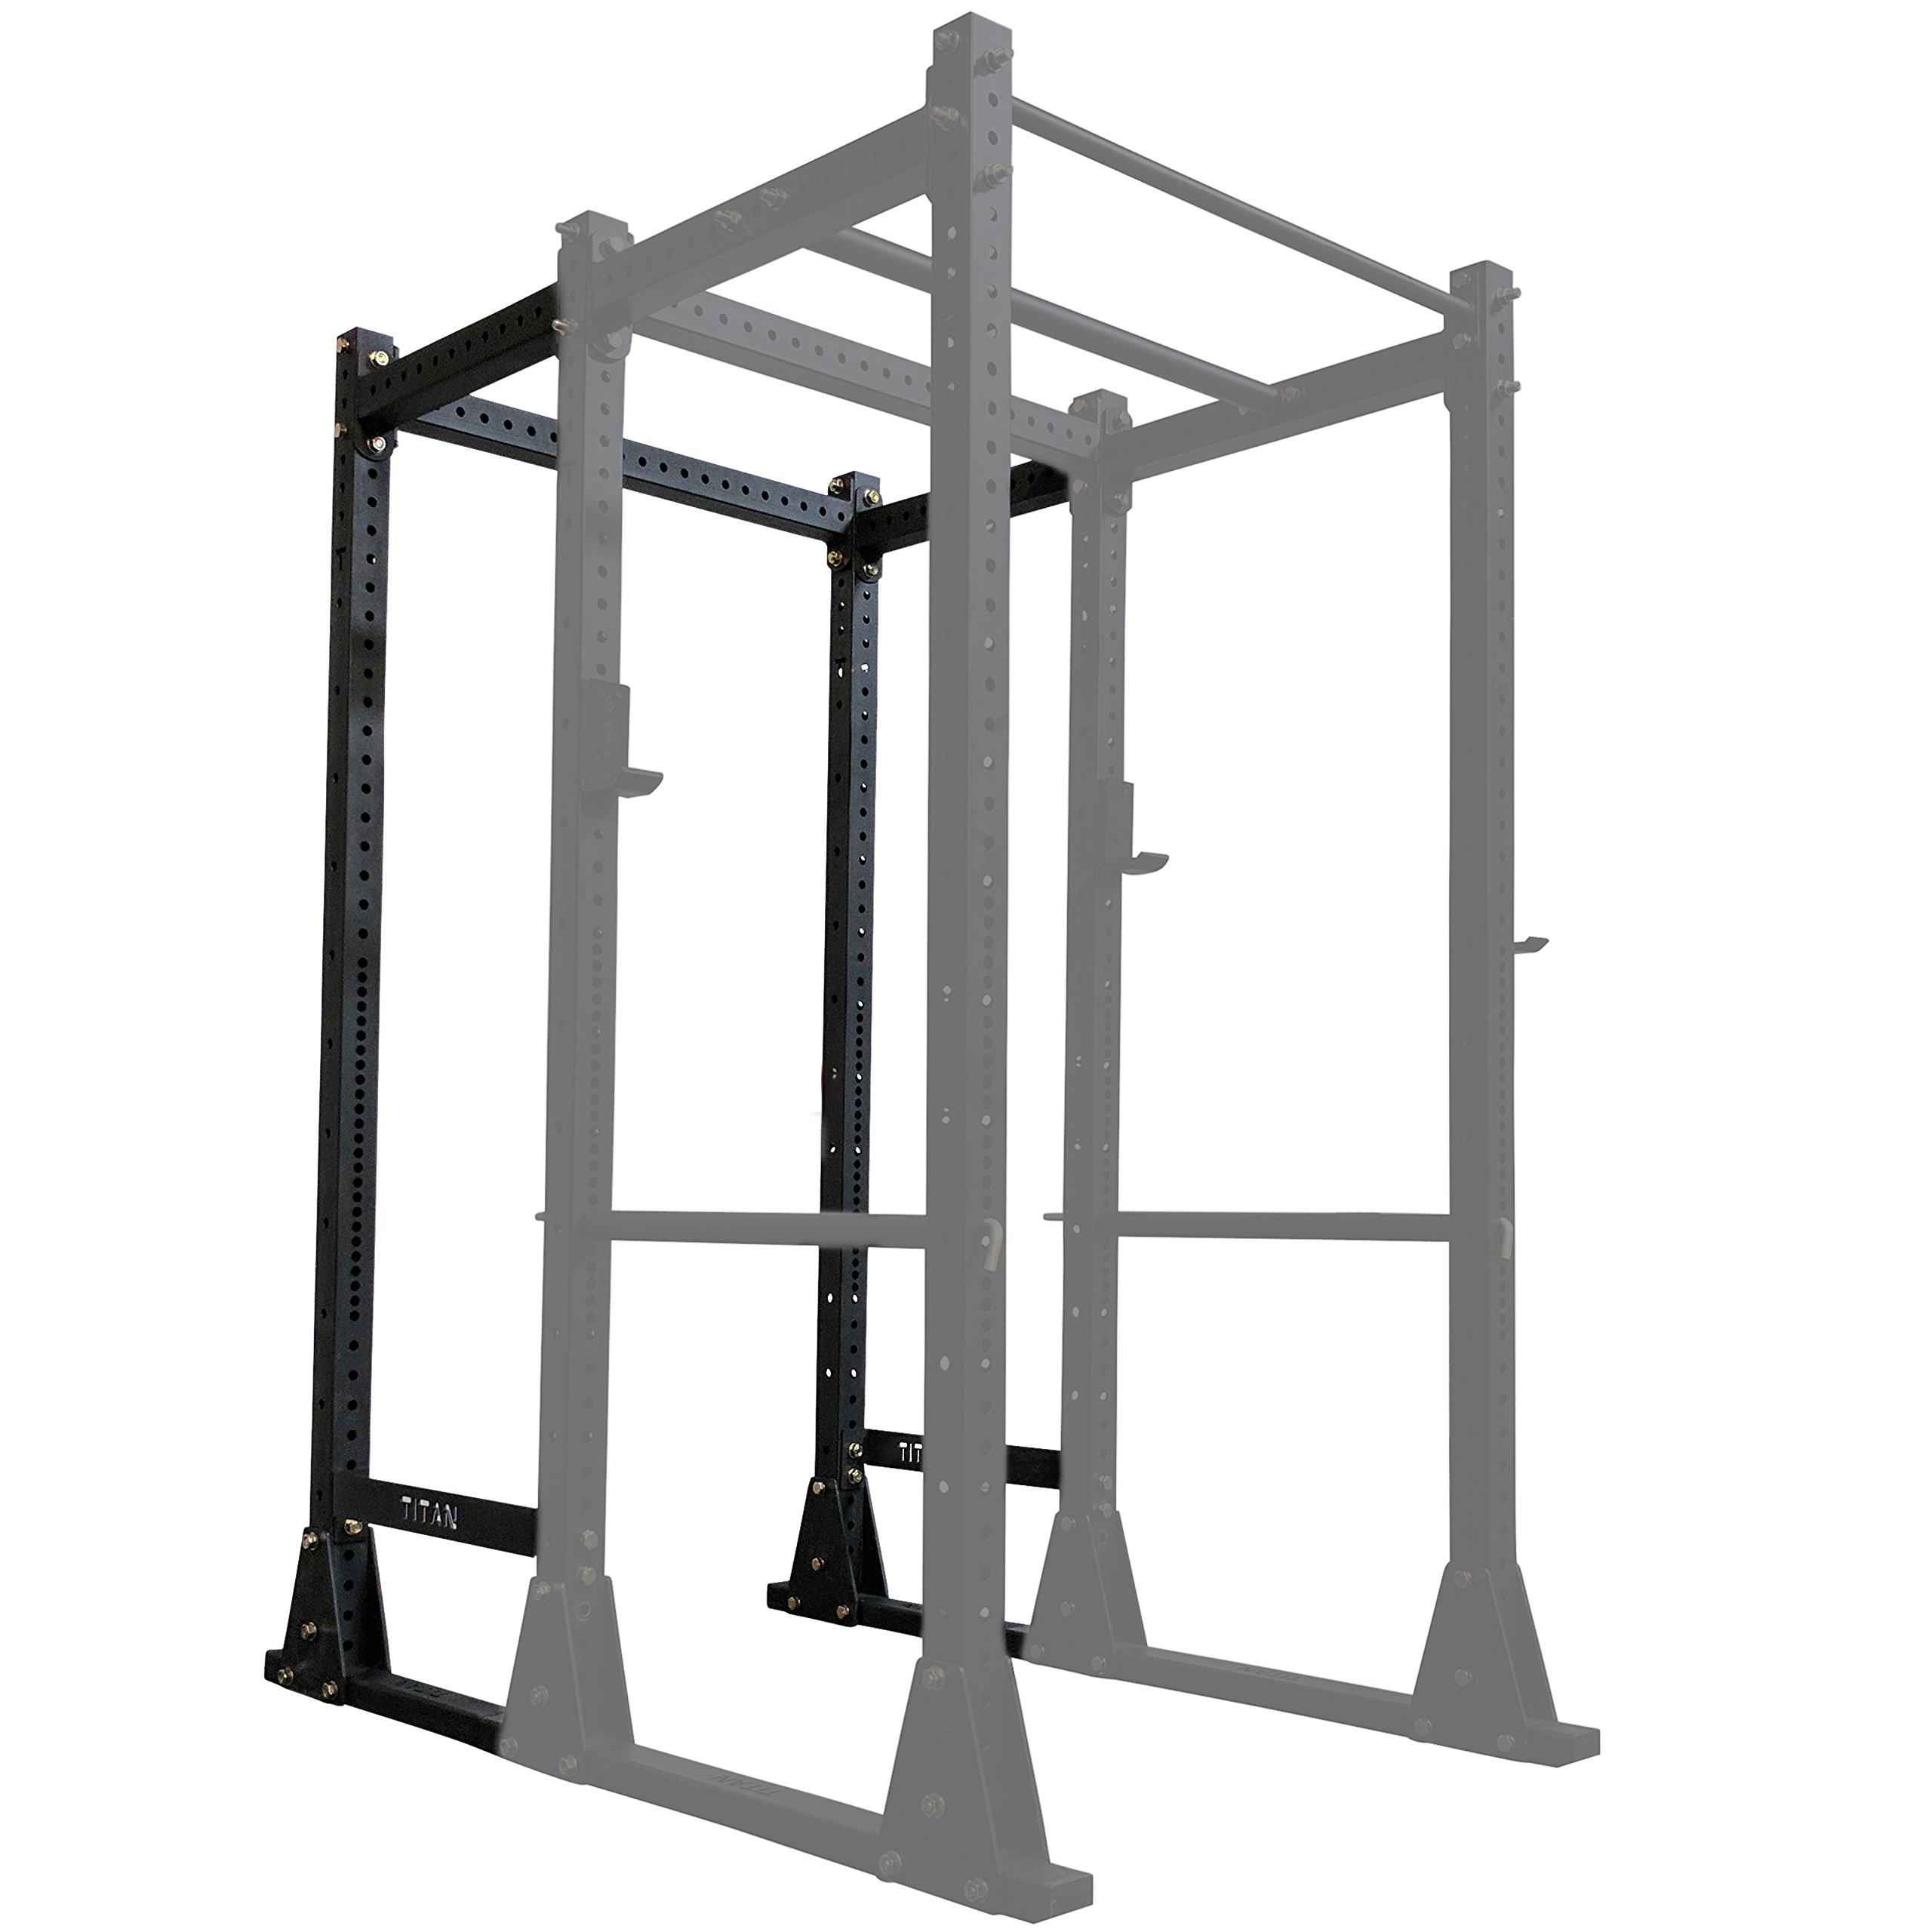 24'' Extension Kit for X-3 Power Rack